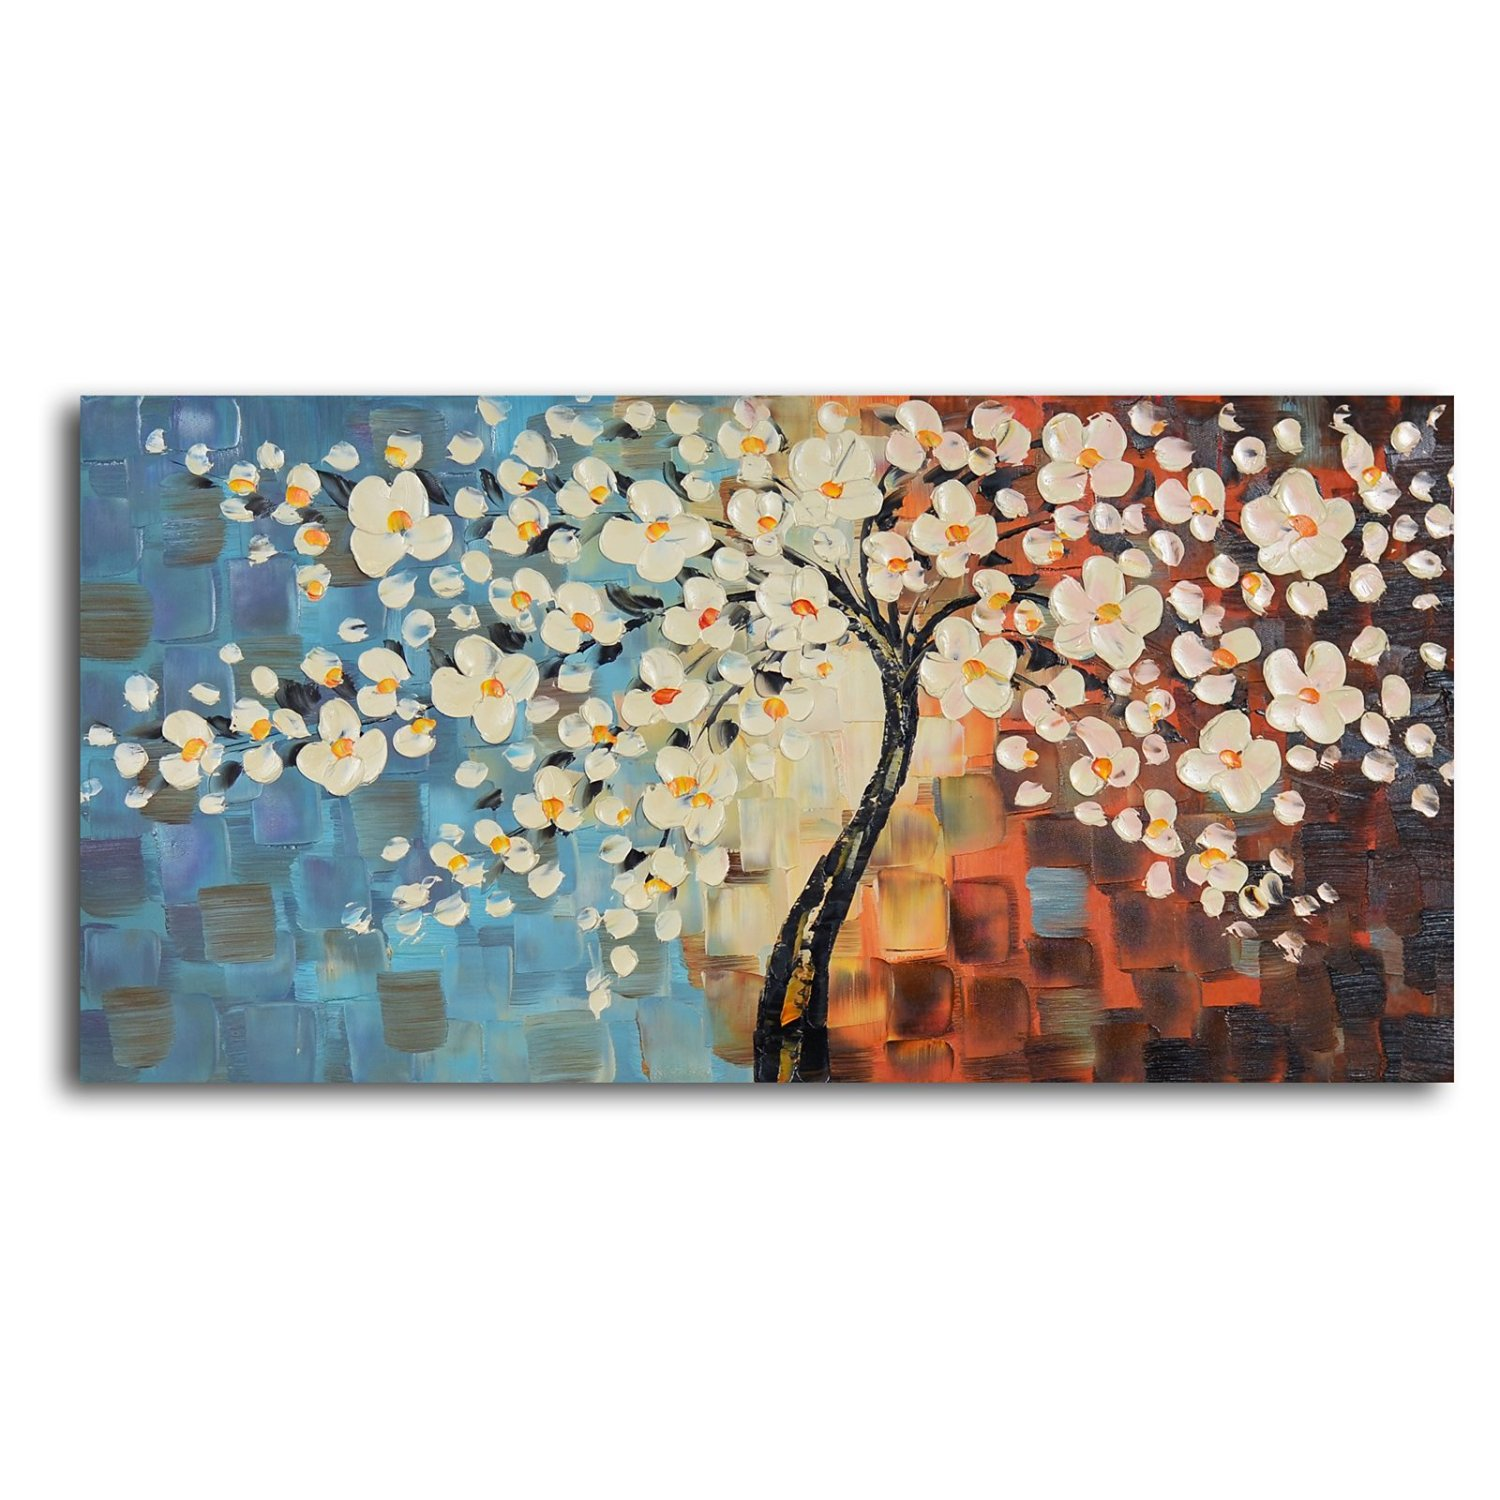 TJie Art Hand Painted Mordern Oil Paintings,Textured Cherry Blossom Oil Painted Wall Art,Contemporary painting in abstract nature theme, Handcrafted using oil paints on canvas, Visible brushstrokes enhance artistic appeal,stretched over frame